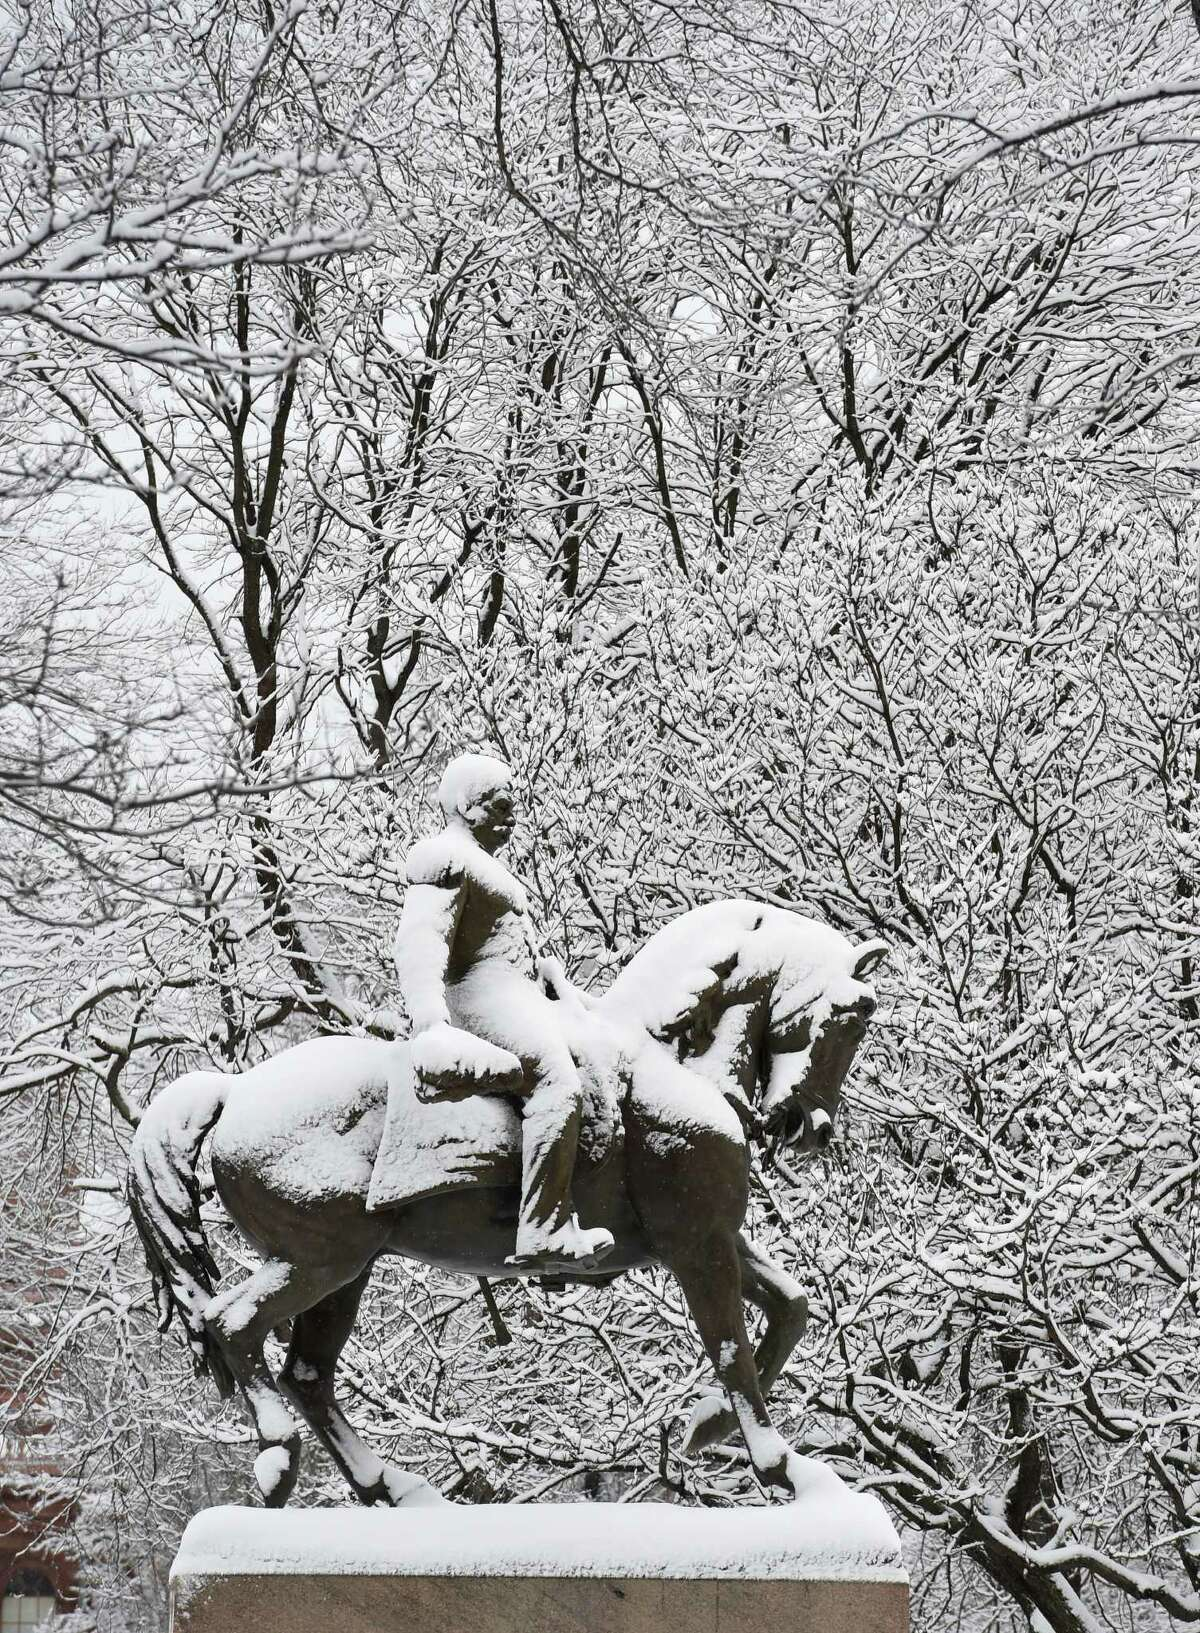 The stature of General Sheridan is snow covered and flanked by trees with snow attached to their limbs Thursday morning in front of the State Capitol Dec. 11, 2014 in Albany, N.Y. (Skip Dickstein/Times Union)